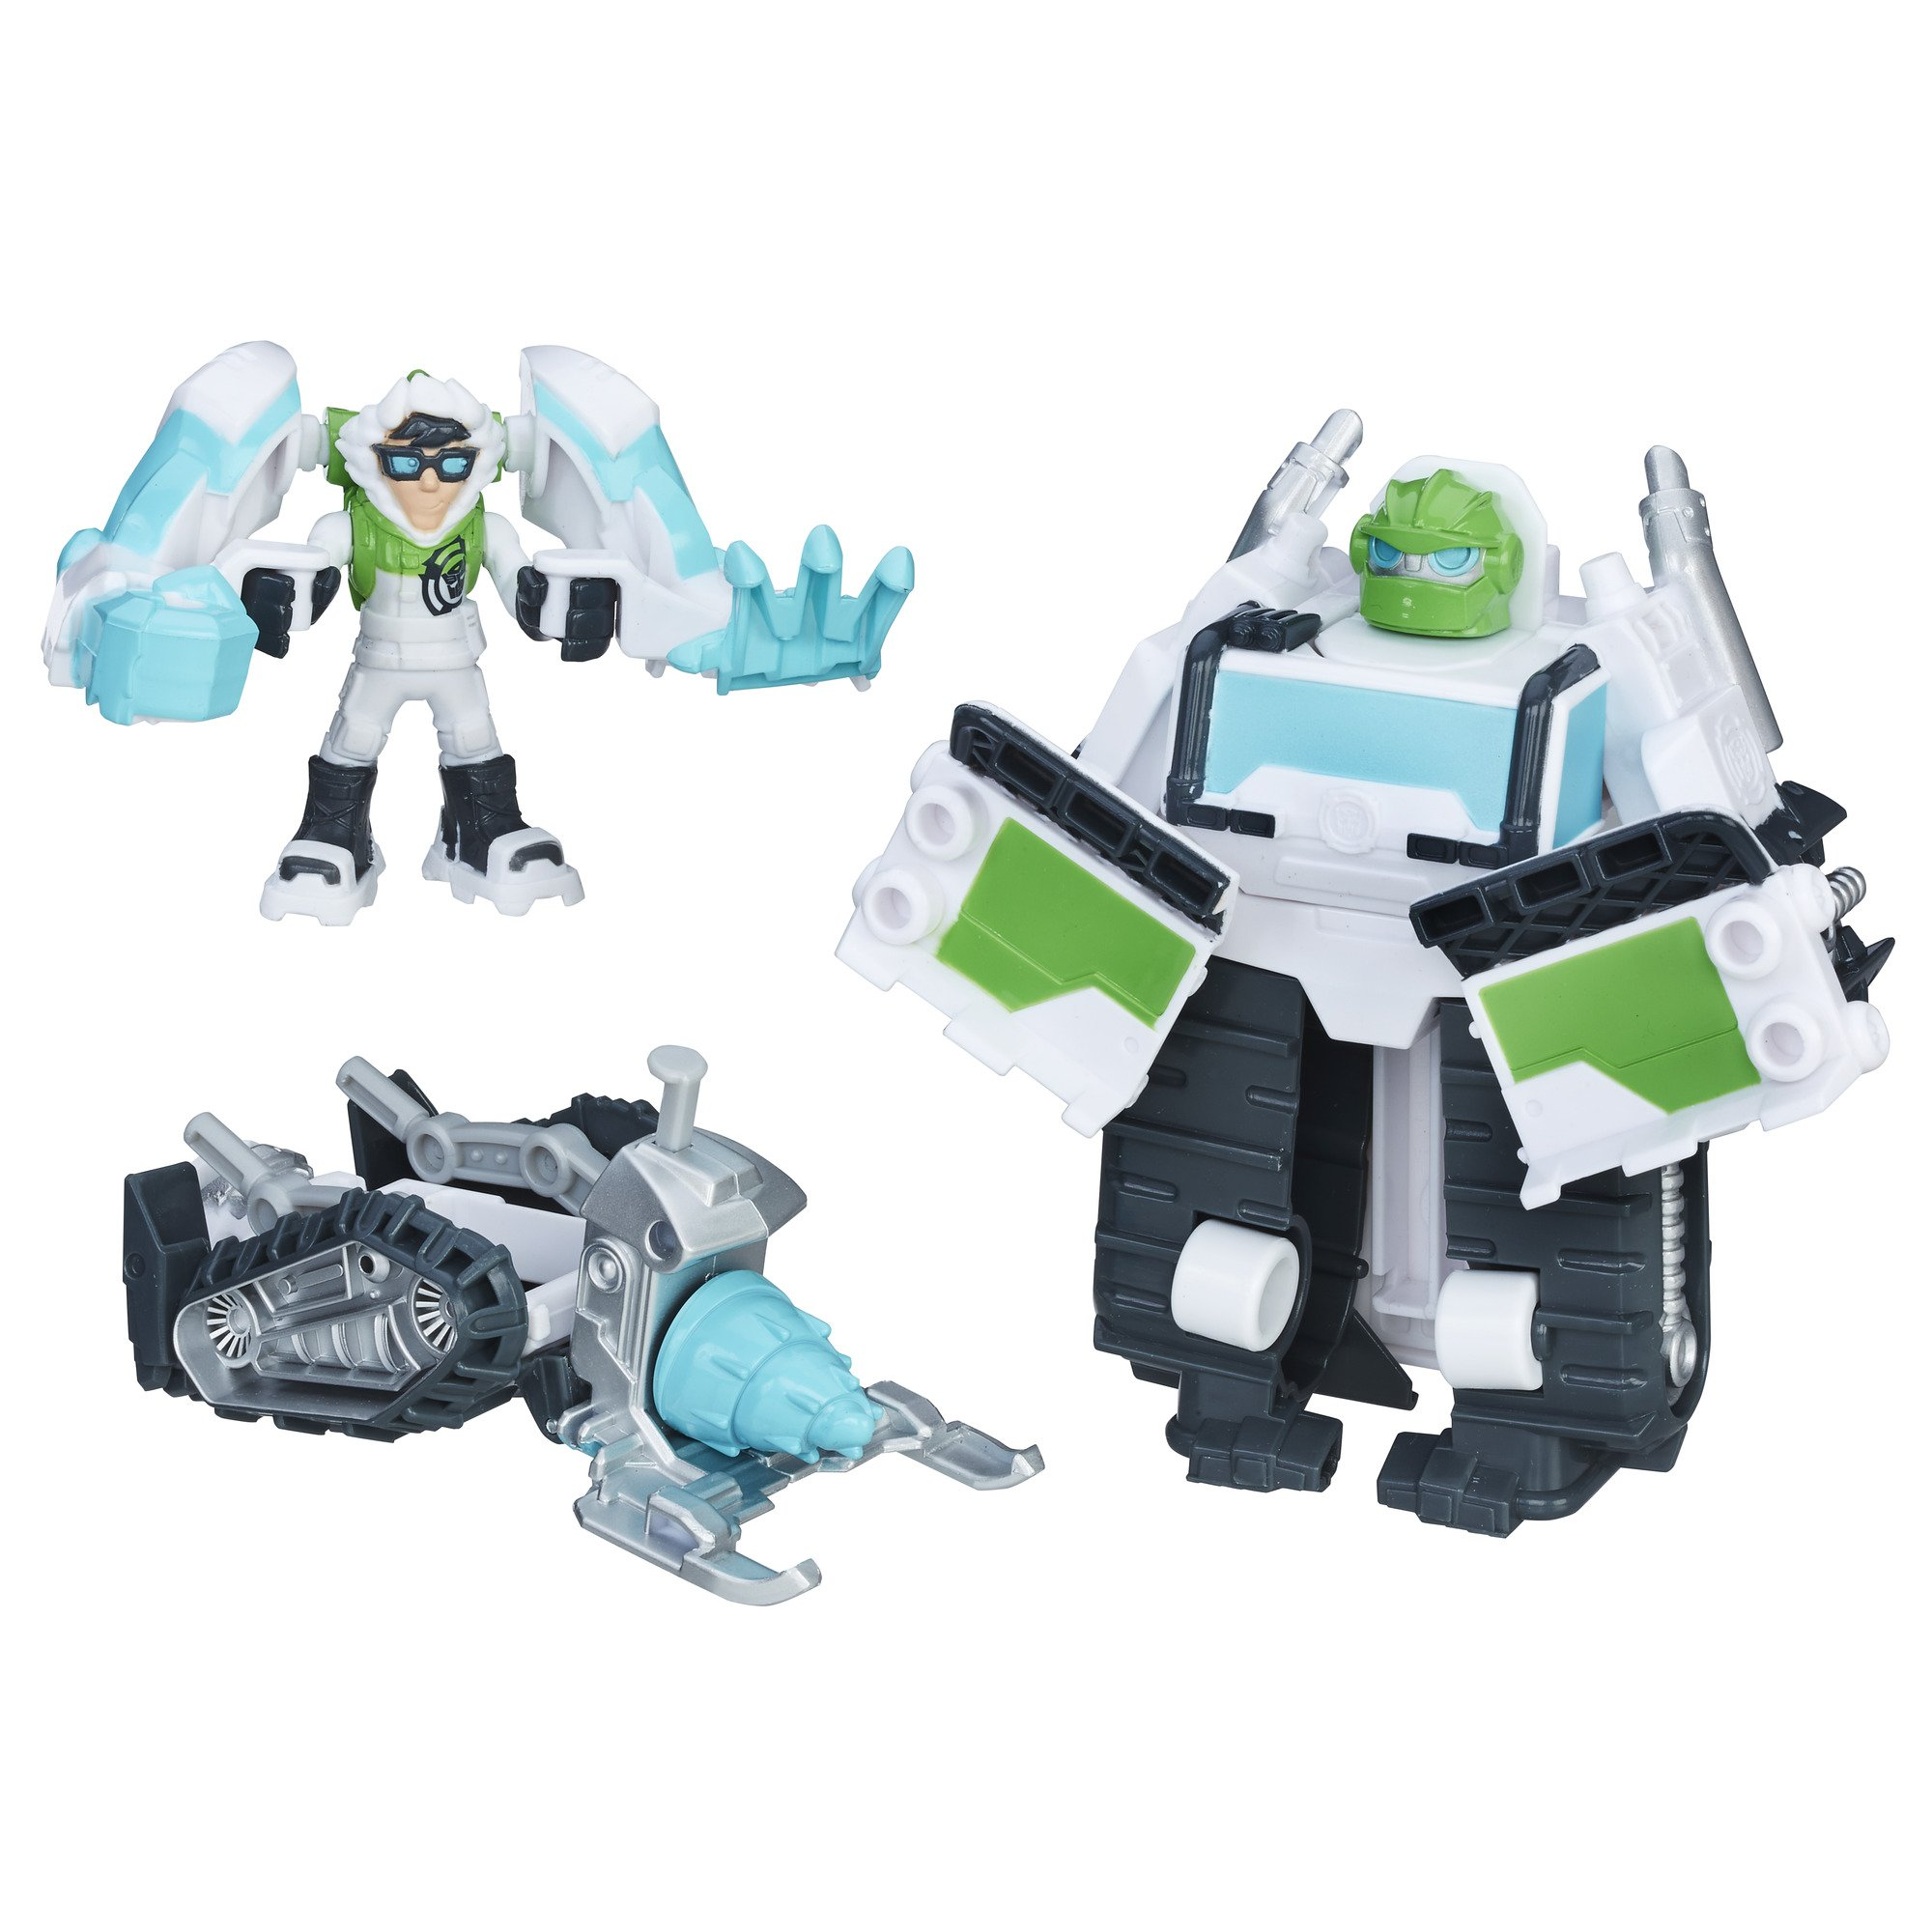 Toys For Boys Robot Kids Toddler Robot 3 4 5 6 7 8 9 Year Old Age